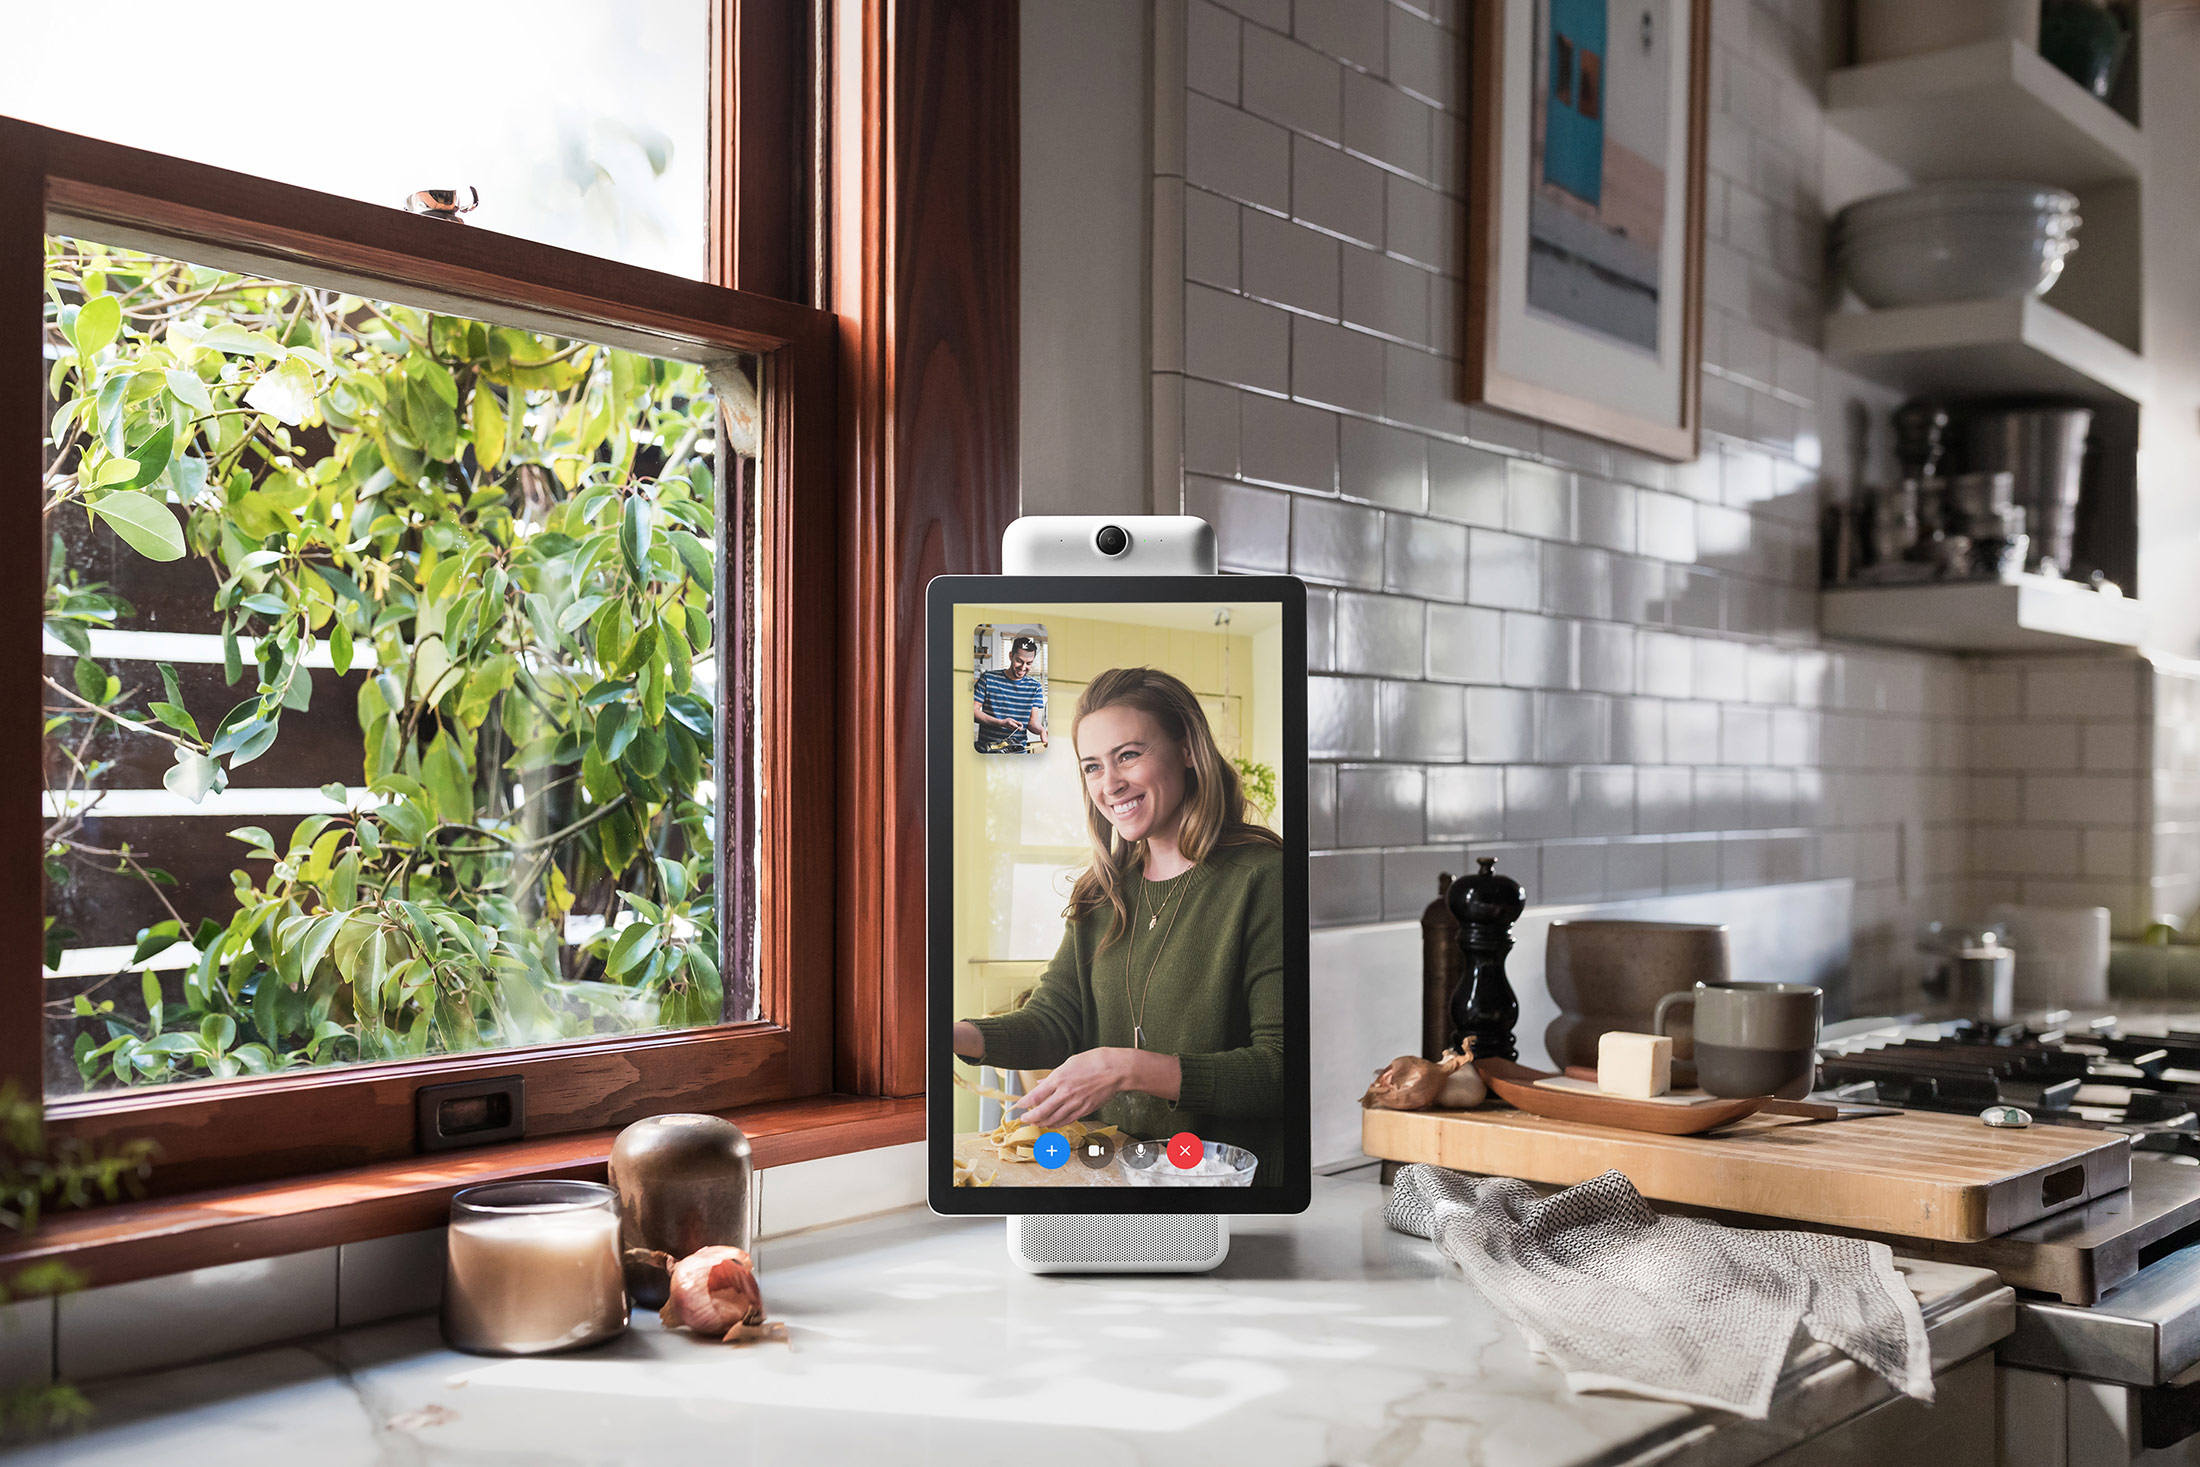 1x 1 Facebook Enters Smart Home Space with Portal Devices